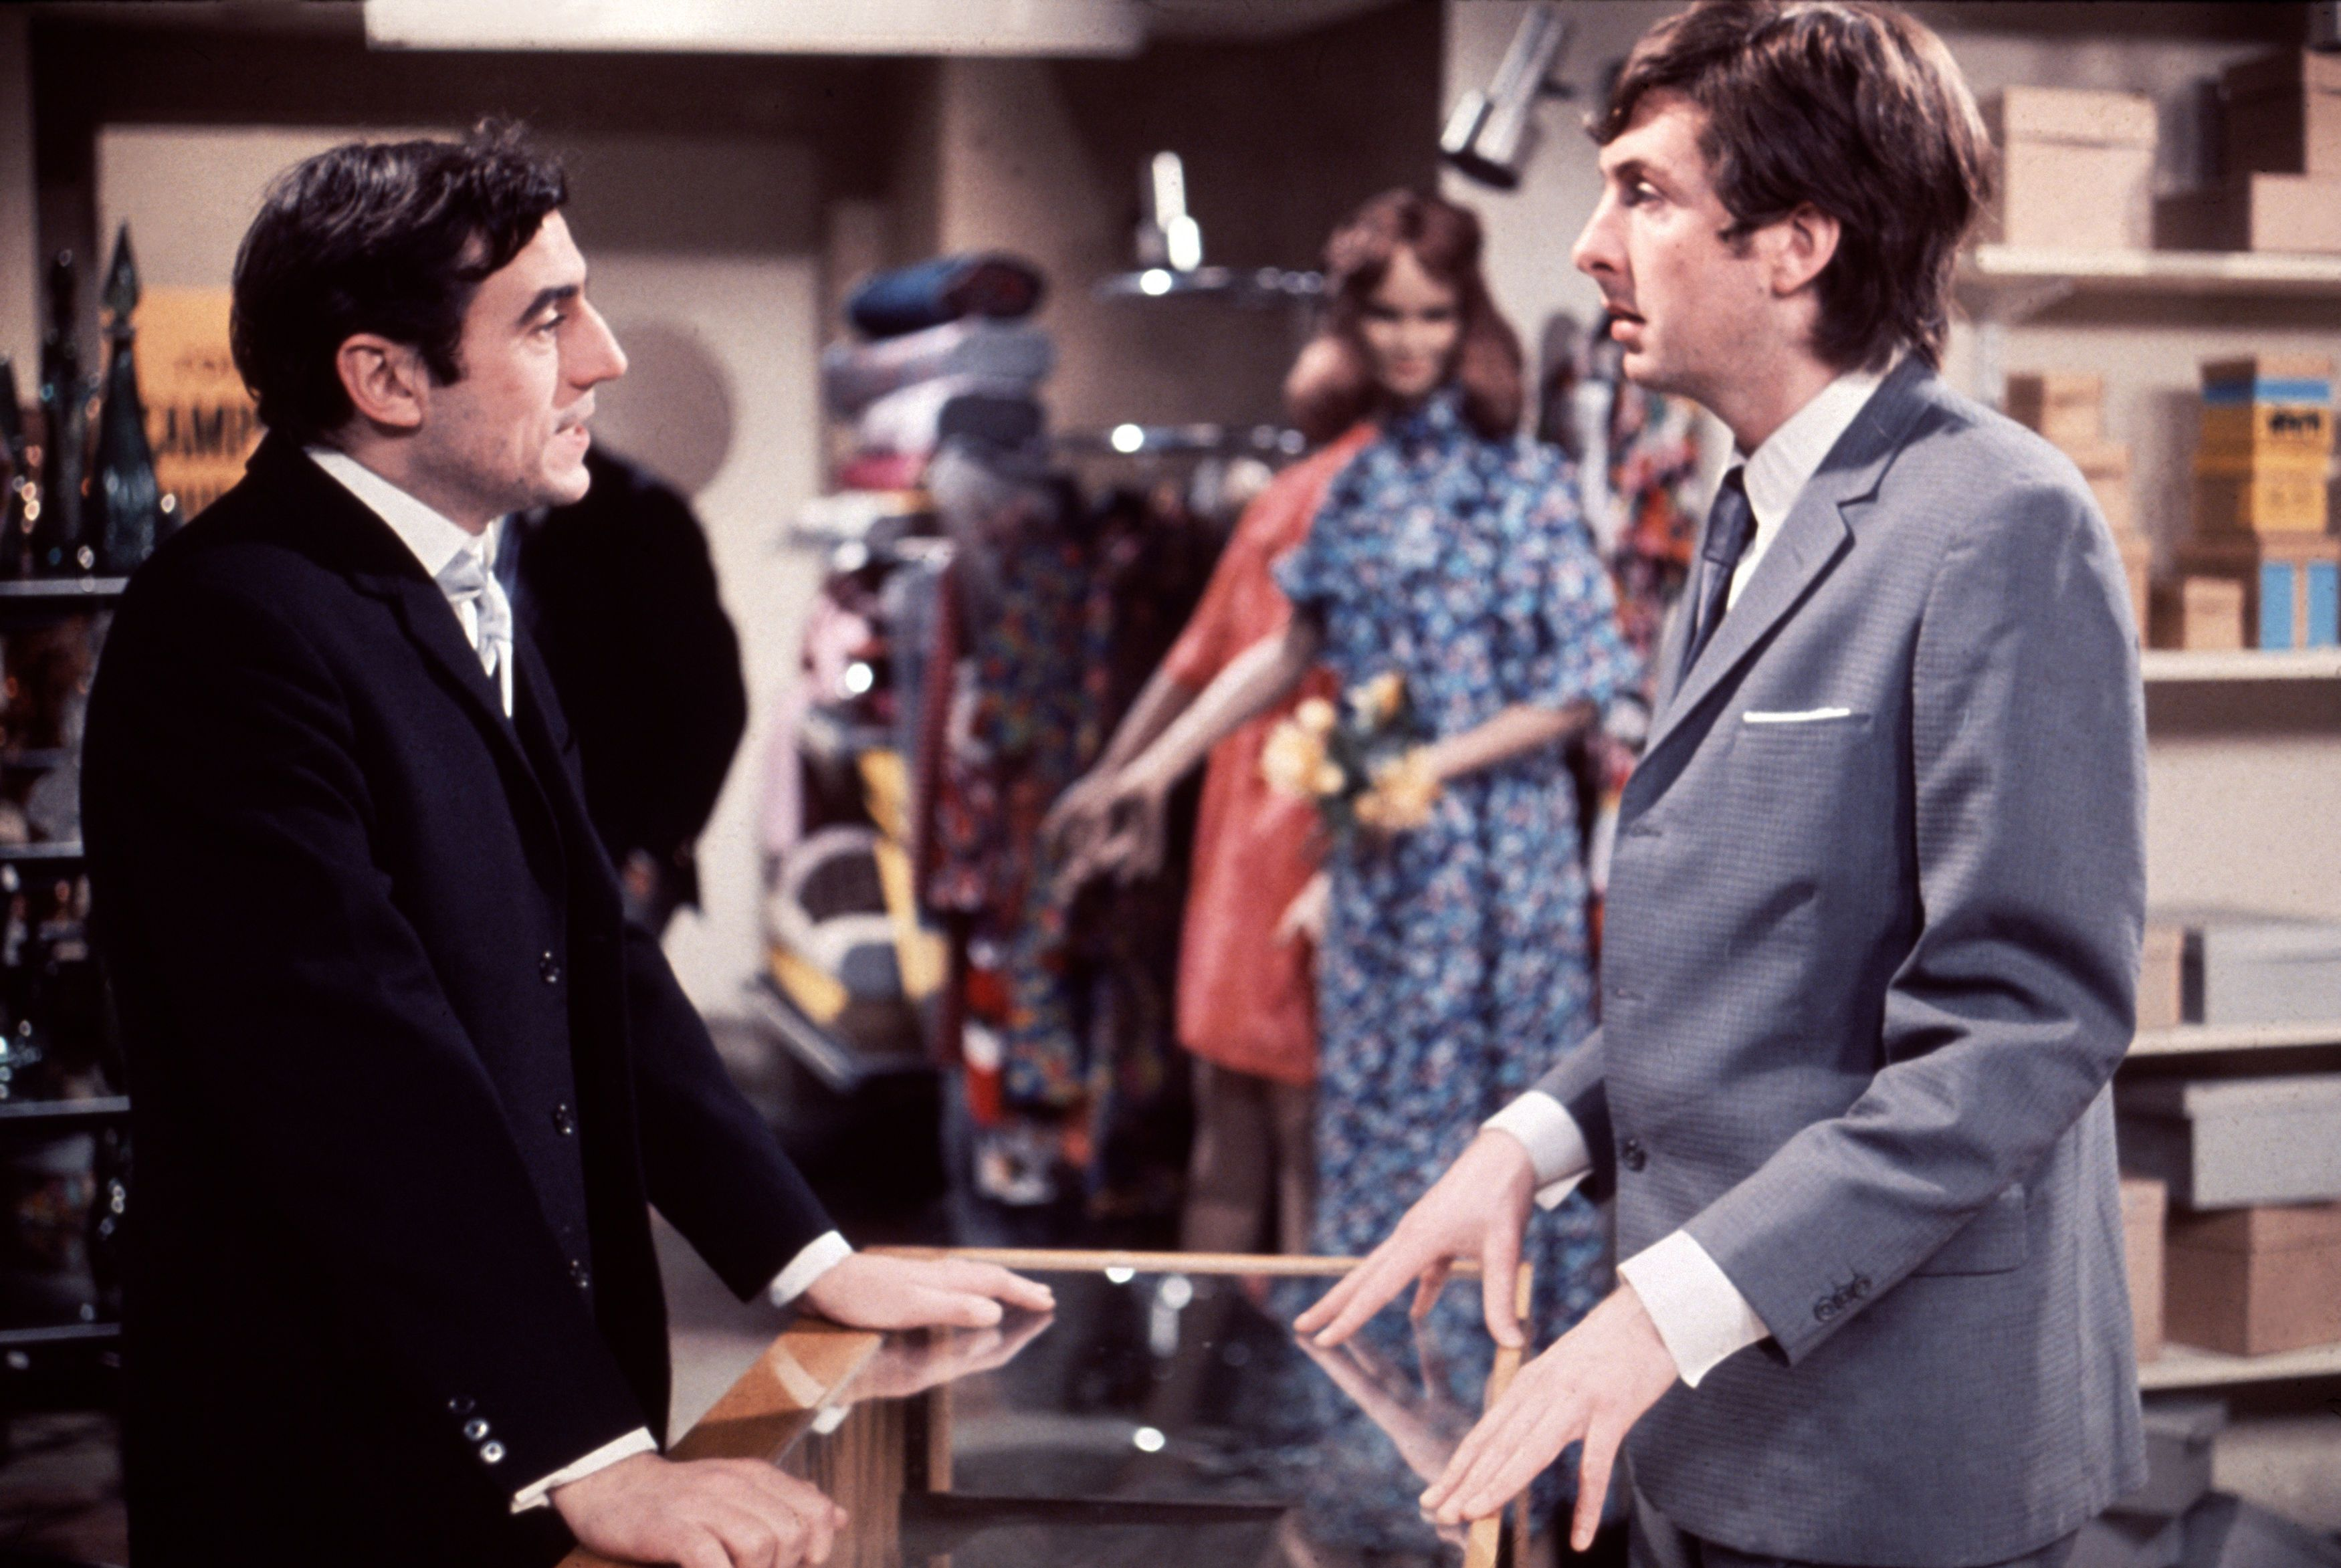 Jones also helped forge the surreal style of TV series Monty Python's Flying Circus